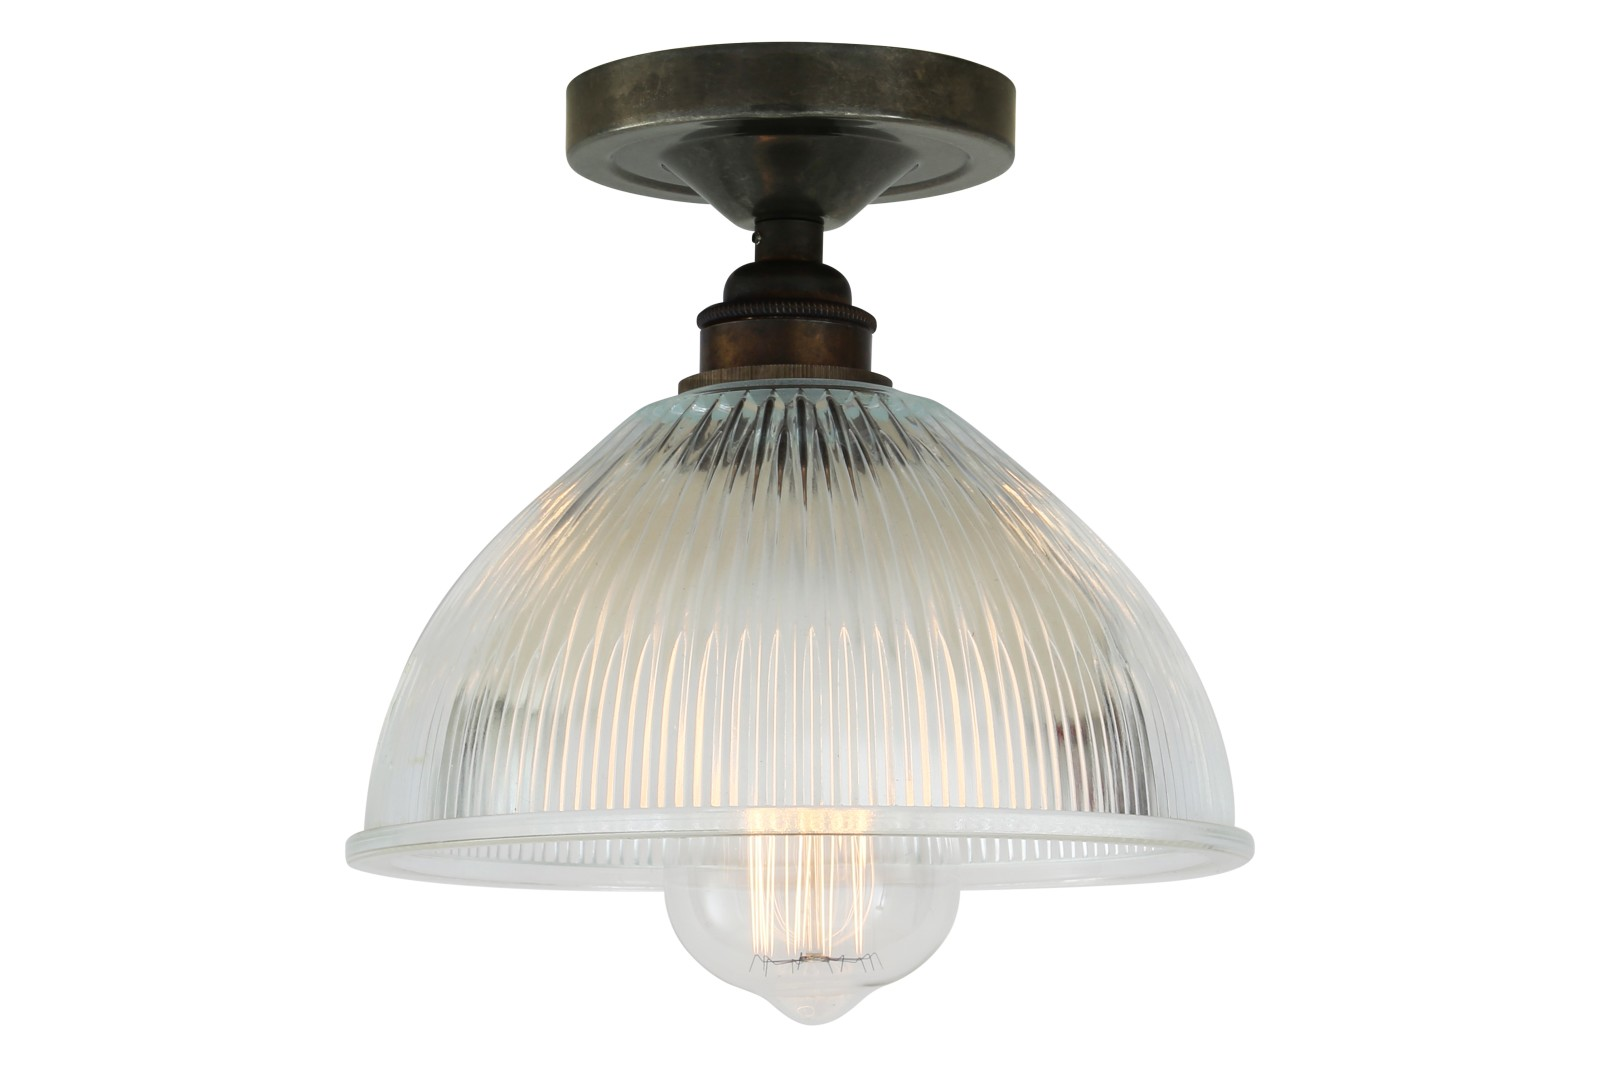 Erbil Ceiling Light Antique Silver